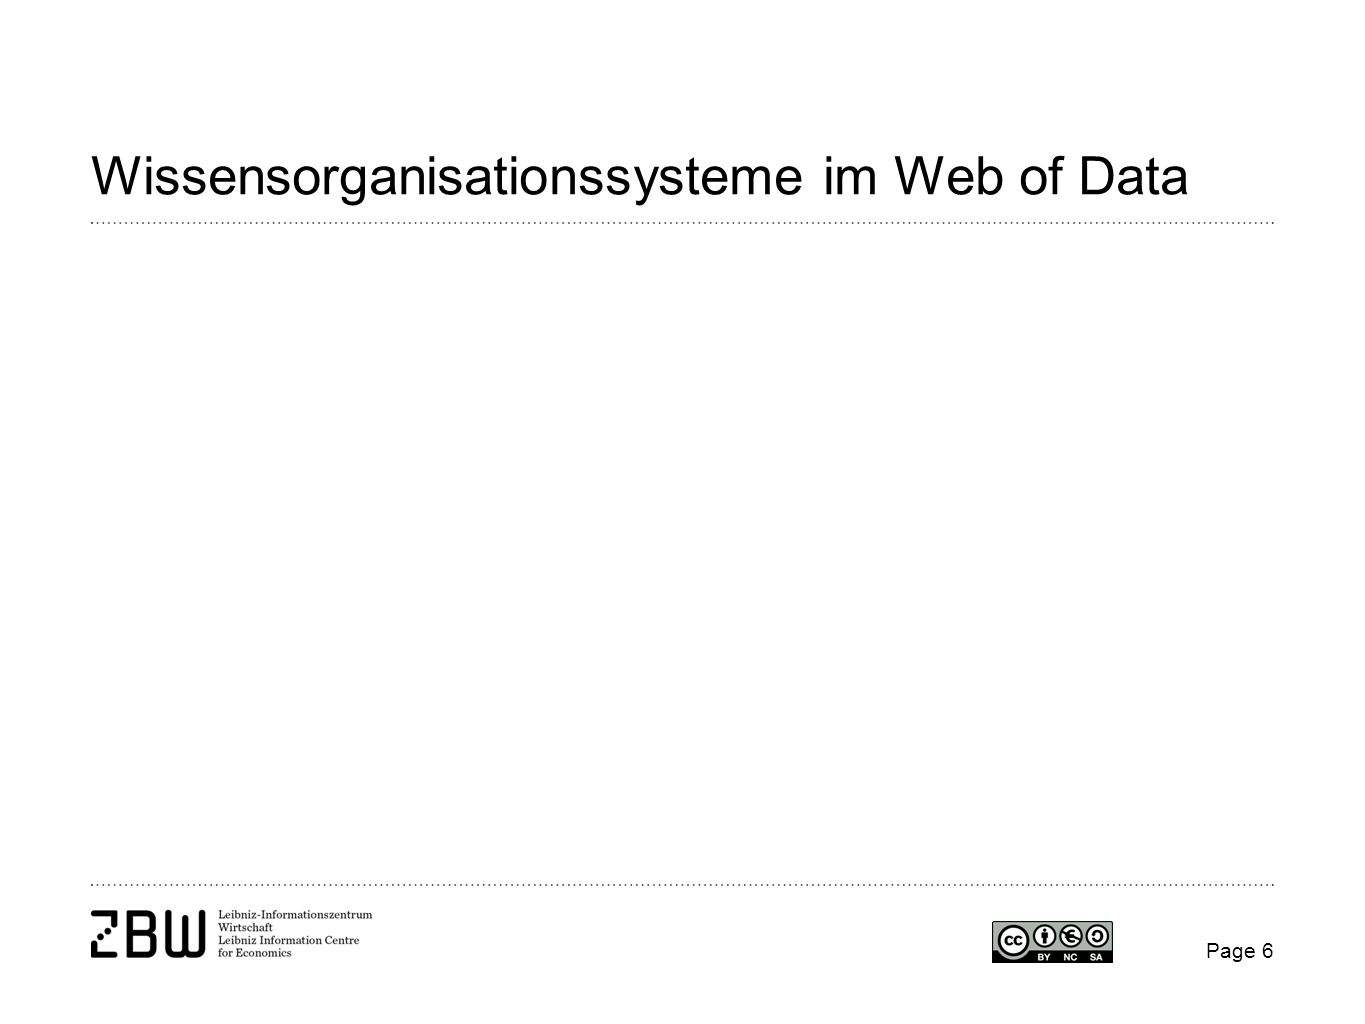 Wissensorganisationssysteme im Web of Data